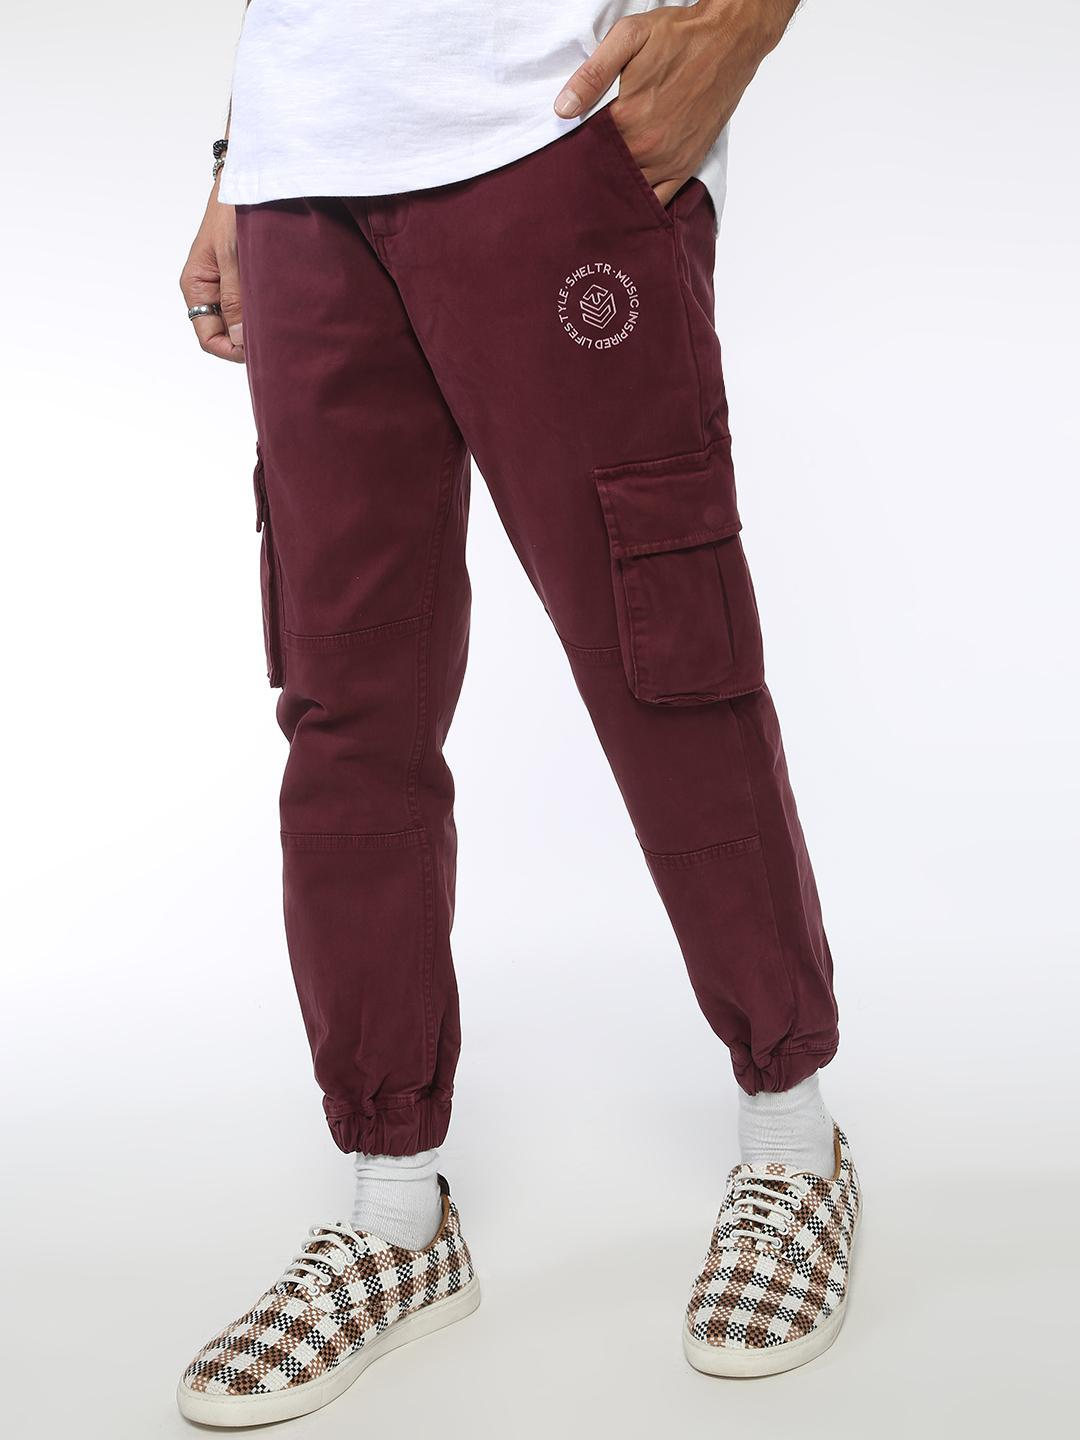 Sheltr Maroon Utility Cargo Pockets Slim Fit Joggers 1